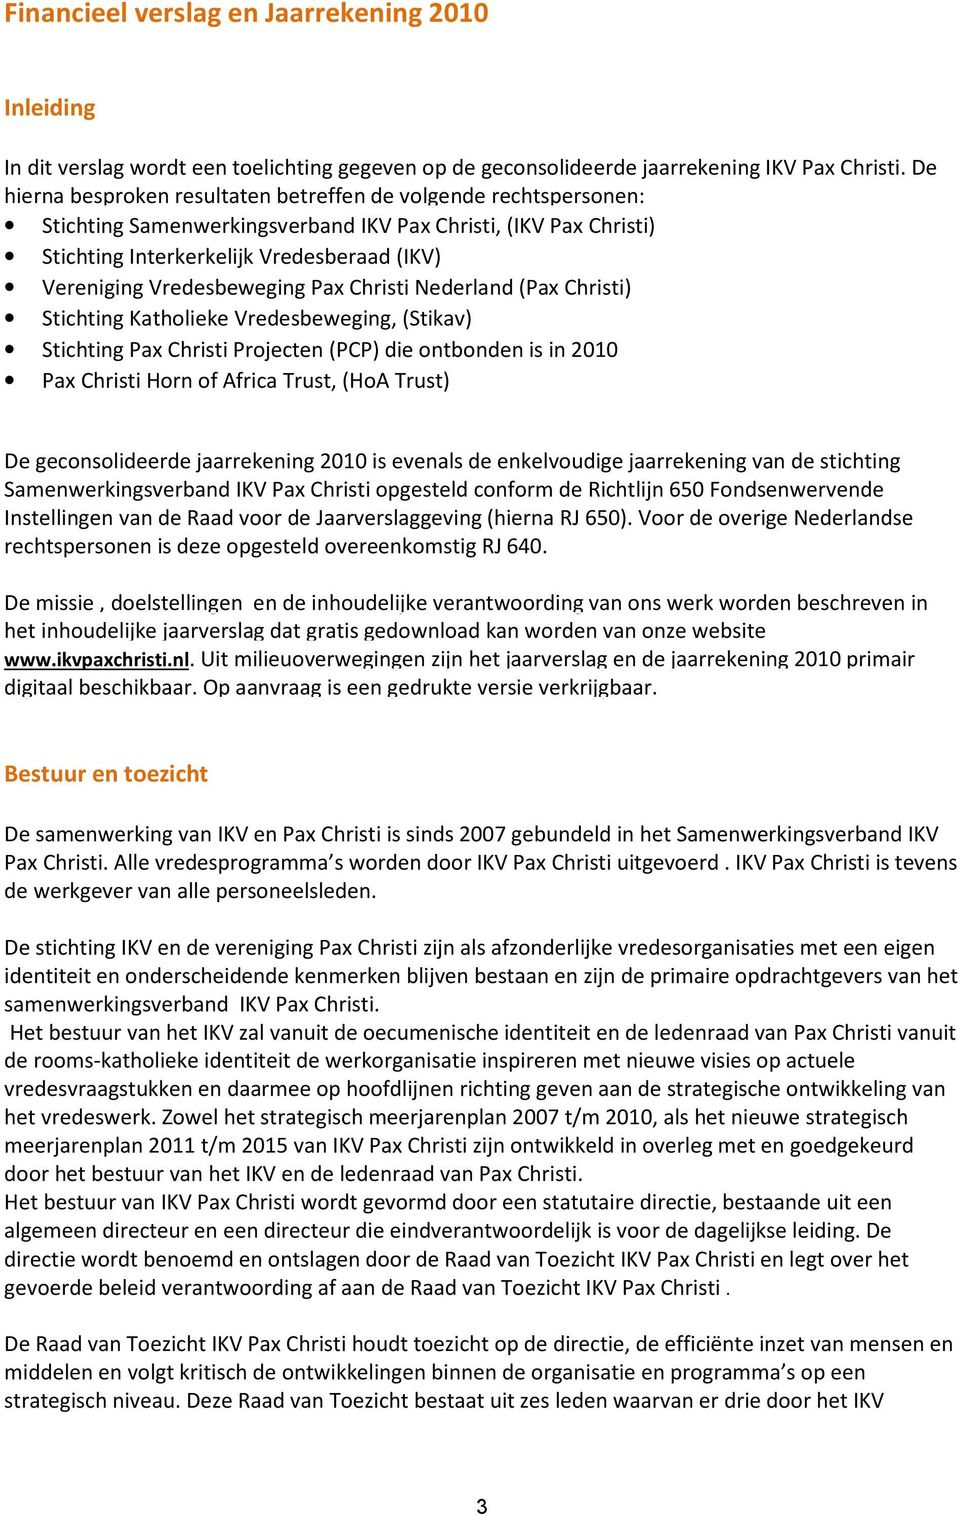 Vredesbeweging Pax Christi Nederland (Pax Christi) Stichting Katholieke Vredesbeweging, (Stikav) Stichting Pax Christi Projecten (PCP) die ontbonden is in 2010 Pax Christi Horn of Africa Trust, (HoA